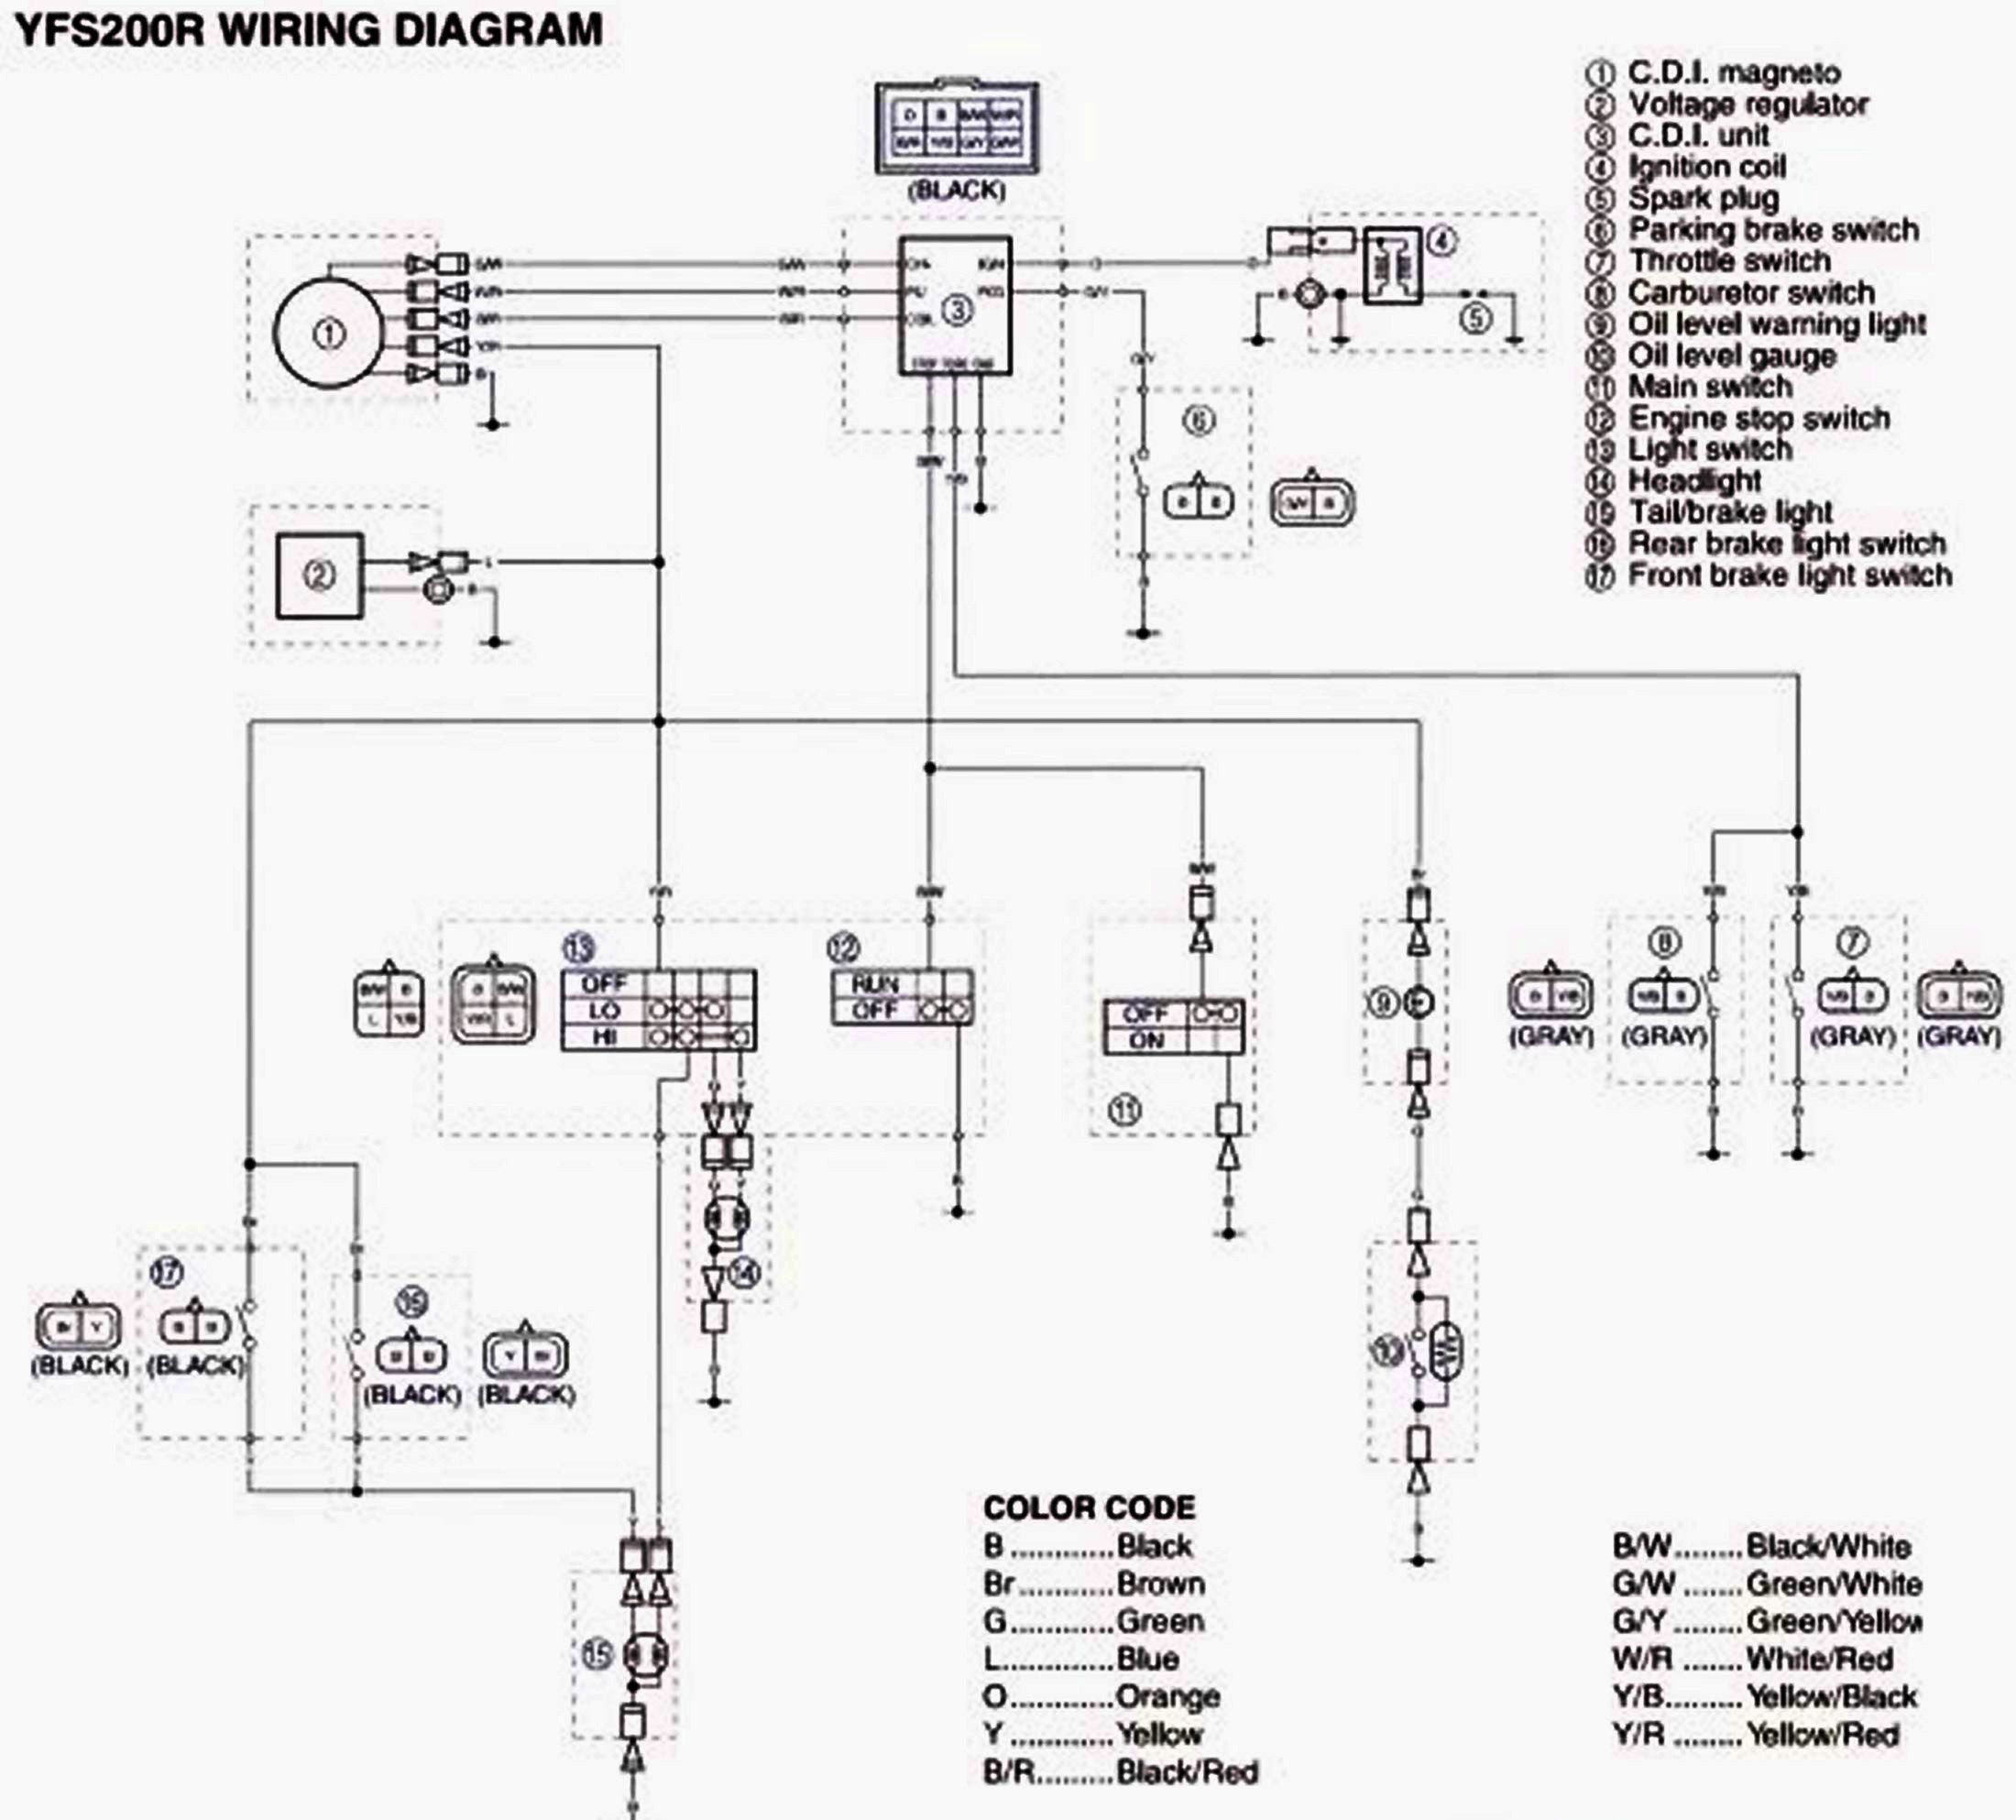 1998 Yamaha G16e Wiring Diagram Free For You G19e Golf Cart Lights Diagrams Rh 19 Shareplm De G2 Gas Electric